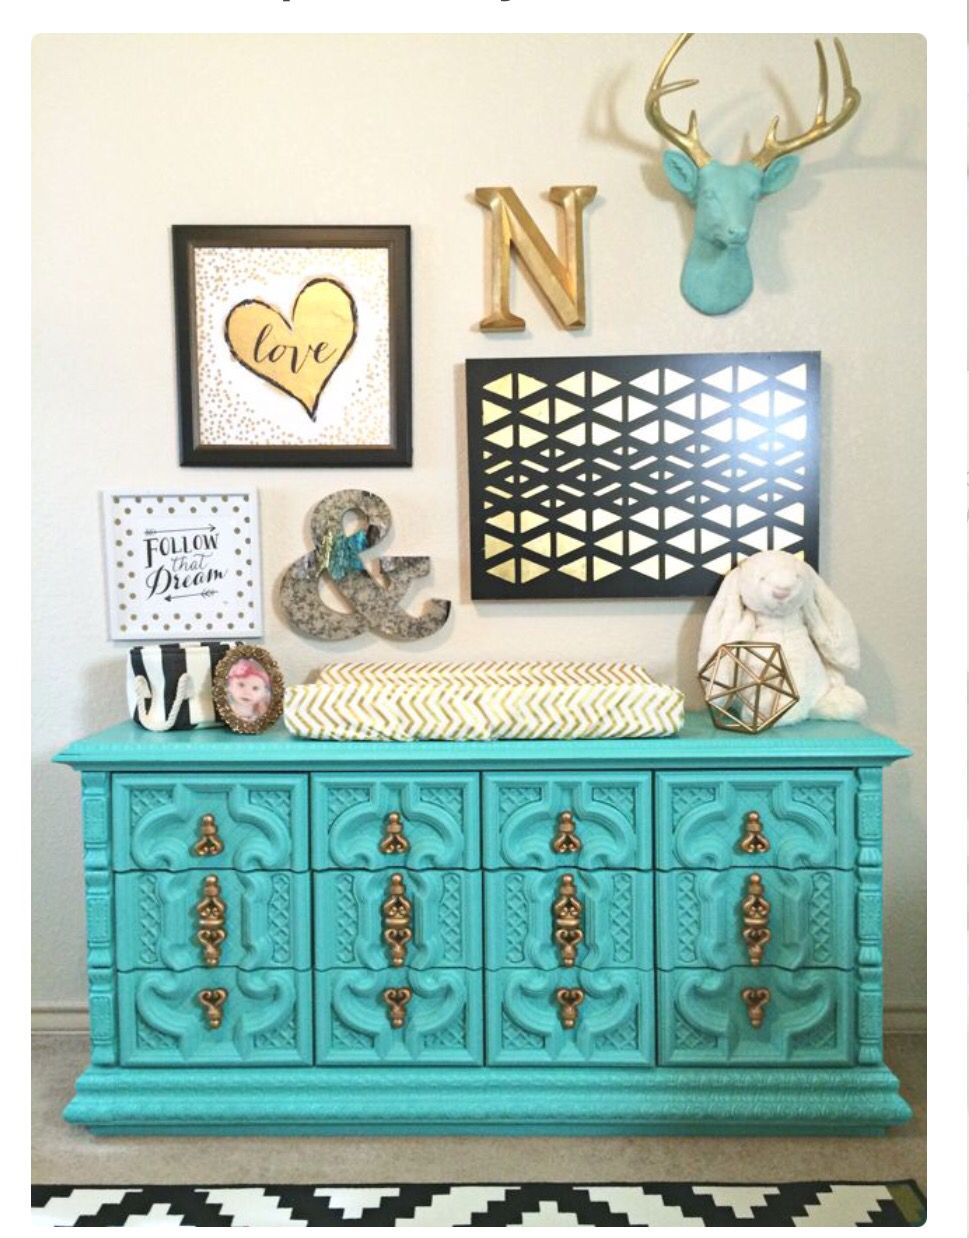 Retro turquoise dresser make over used in a nursery as a change ...